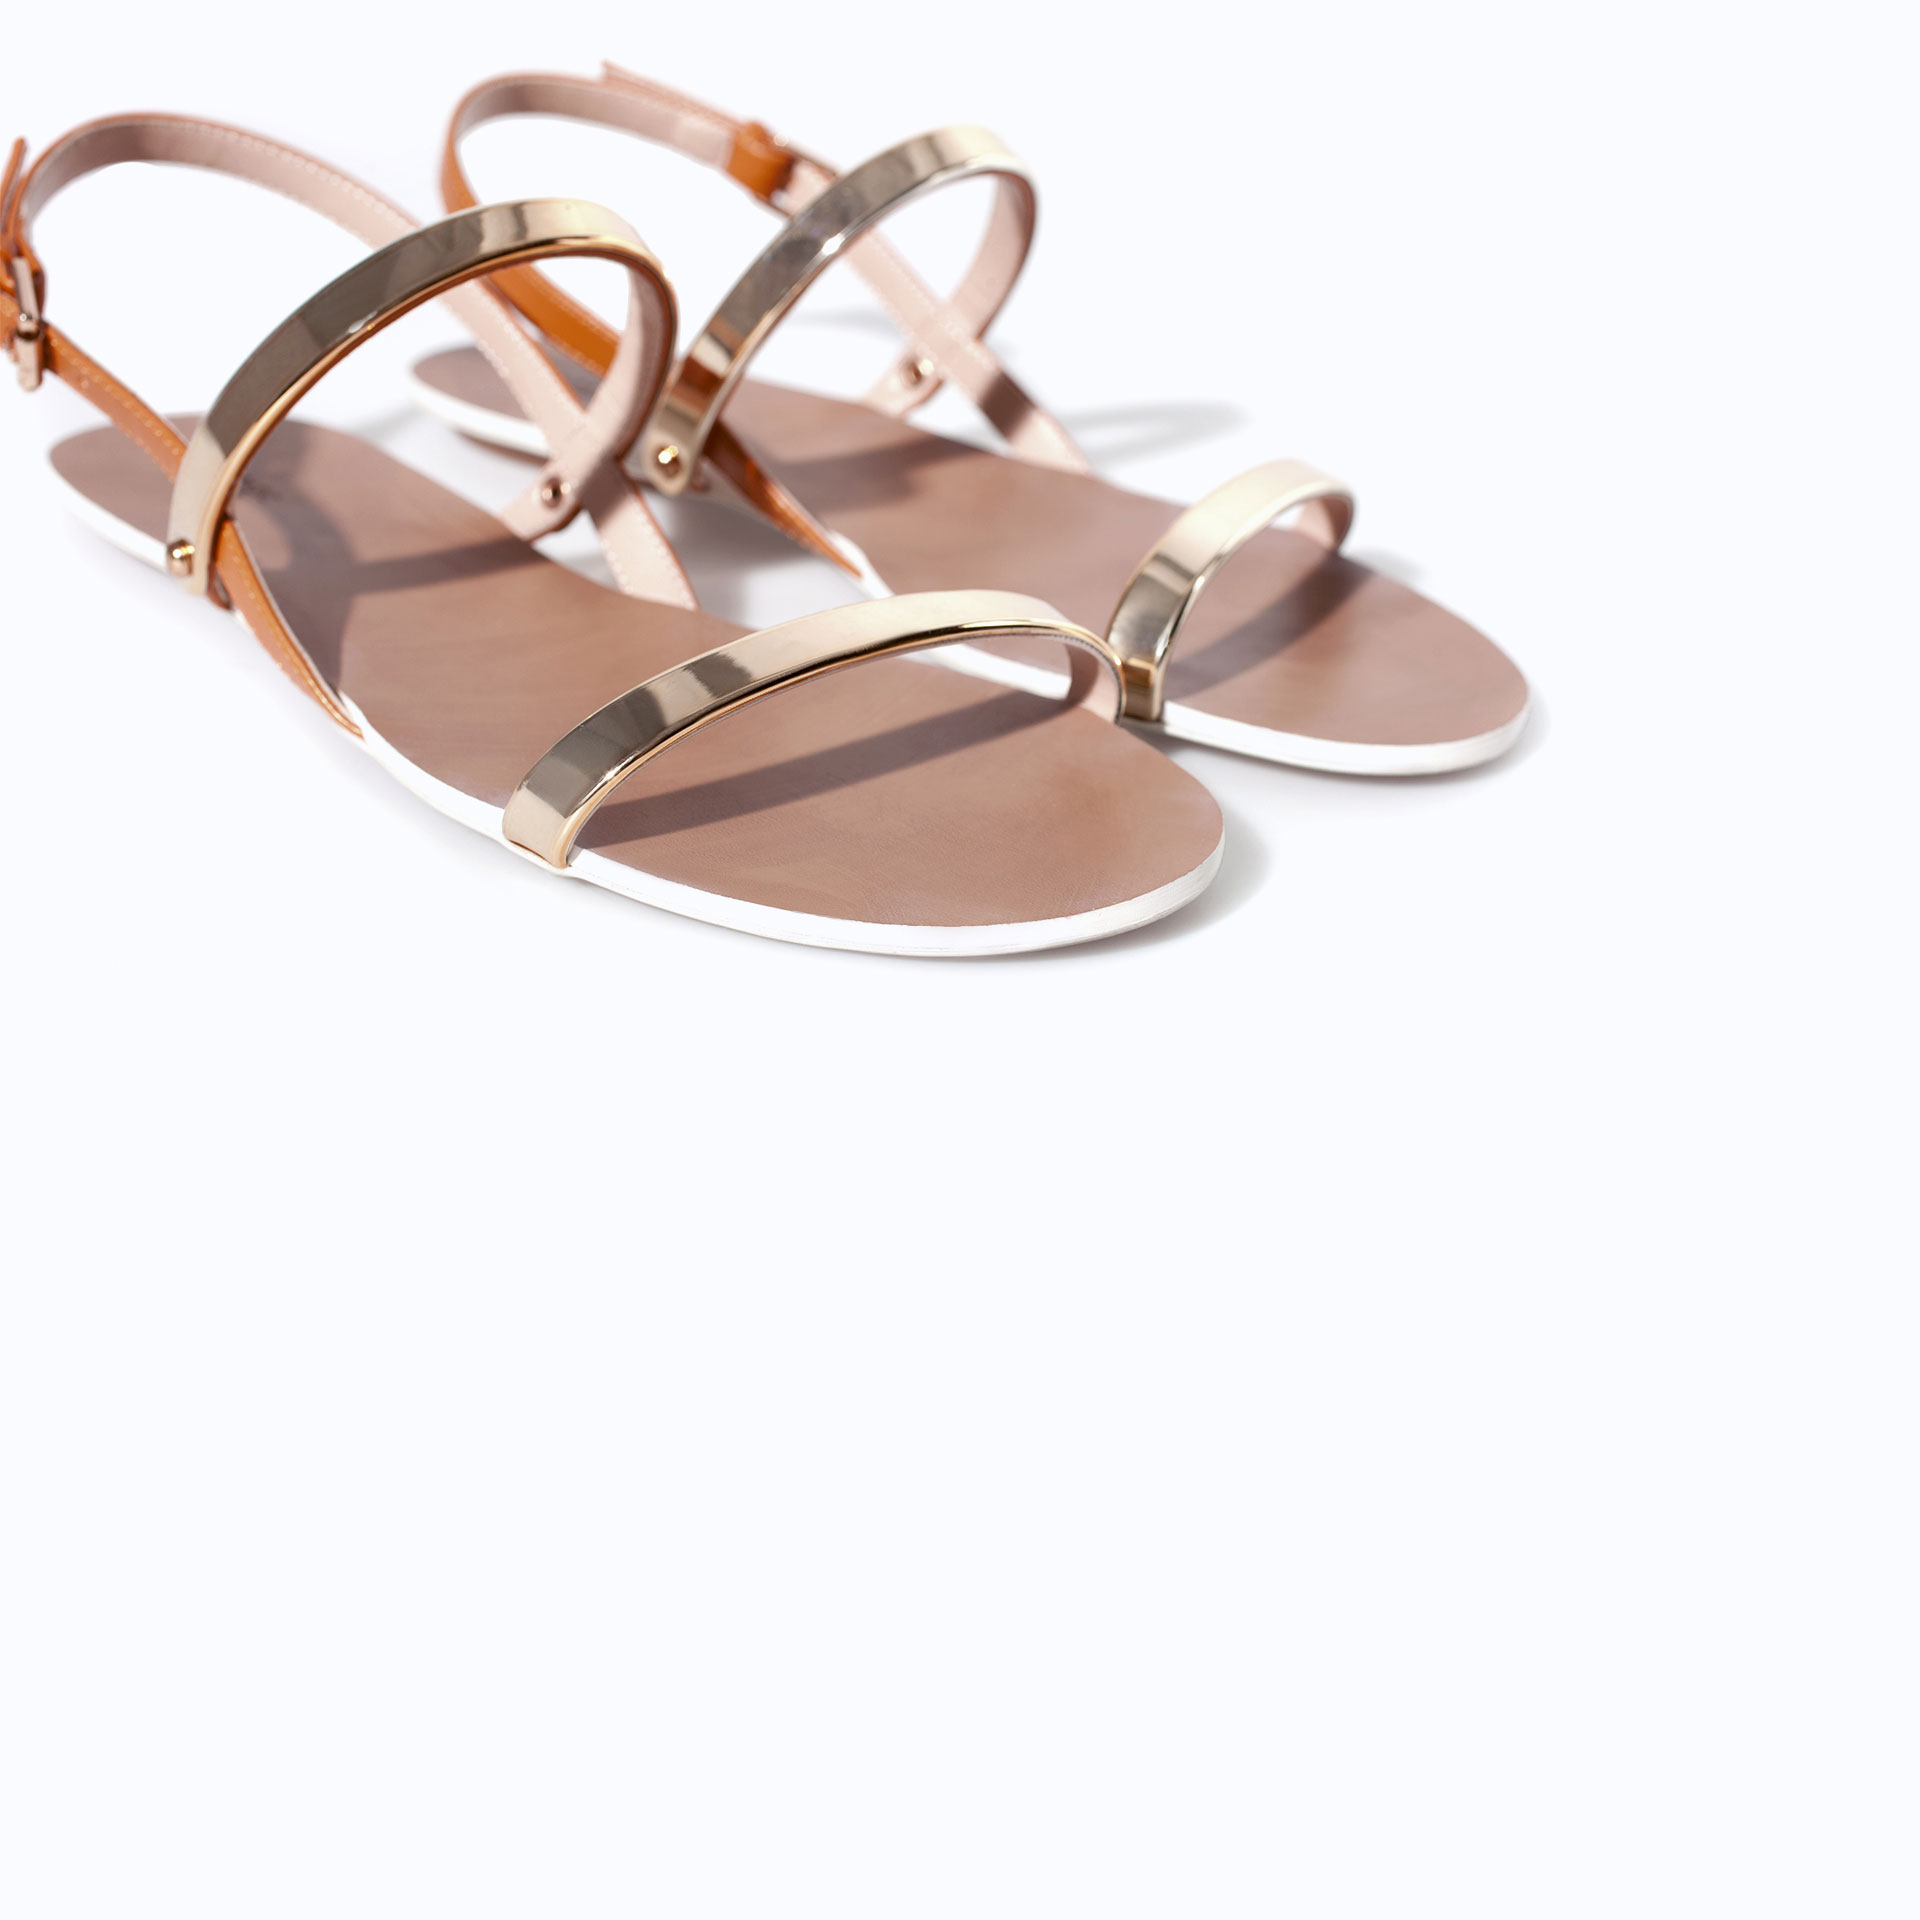 Zara sandals shoes